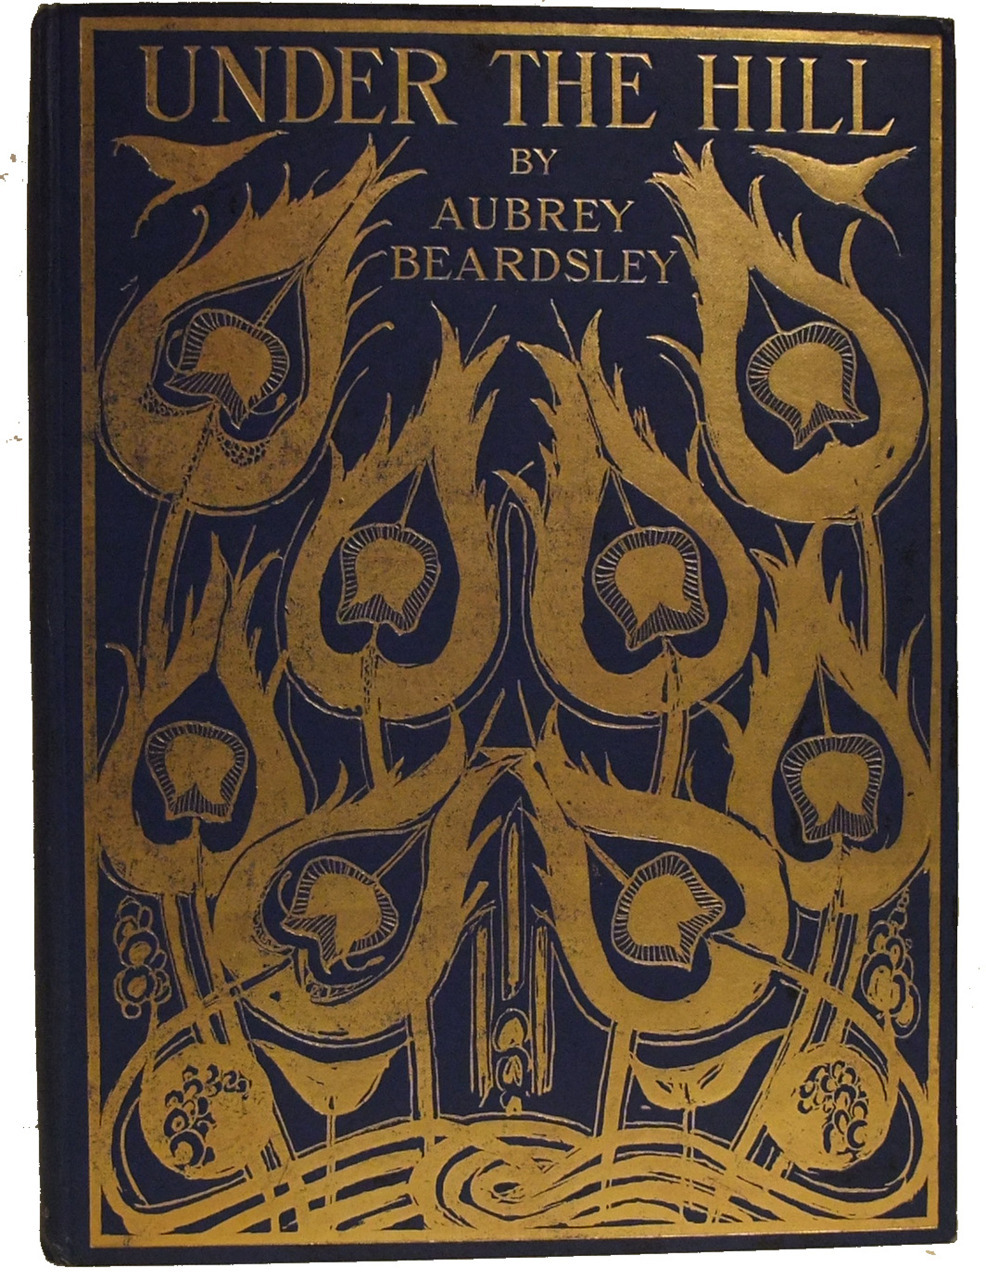 Aubrey Beardsley ~ Book Cover ~ Under the Hill and Other Essays ~ via BEARDSLEY, AUBREY: Under the Hill and Other Essays in Prose and Verse. London: John Lane 1904. Illustrations with tissue guards. 4to. 70, [4, ads] pp. Publisher's blue cloth, with gilt design by Beardsley.